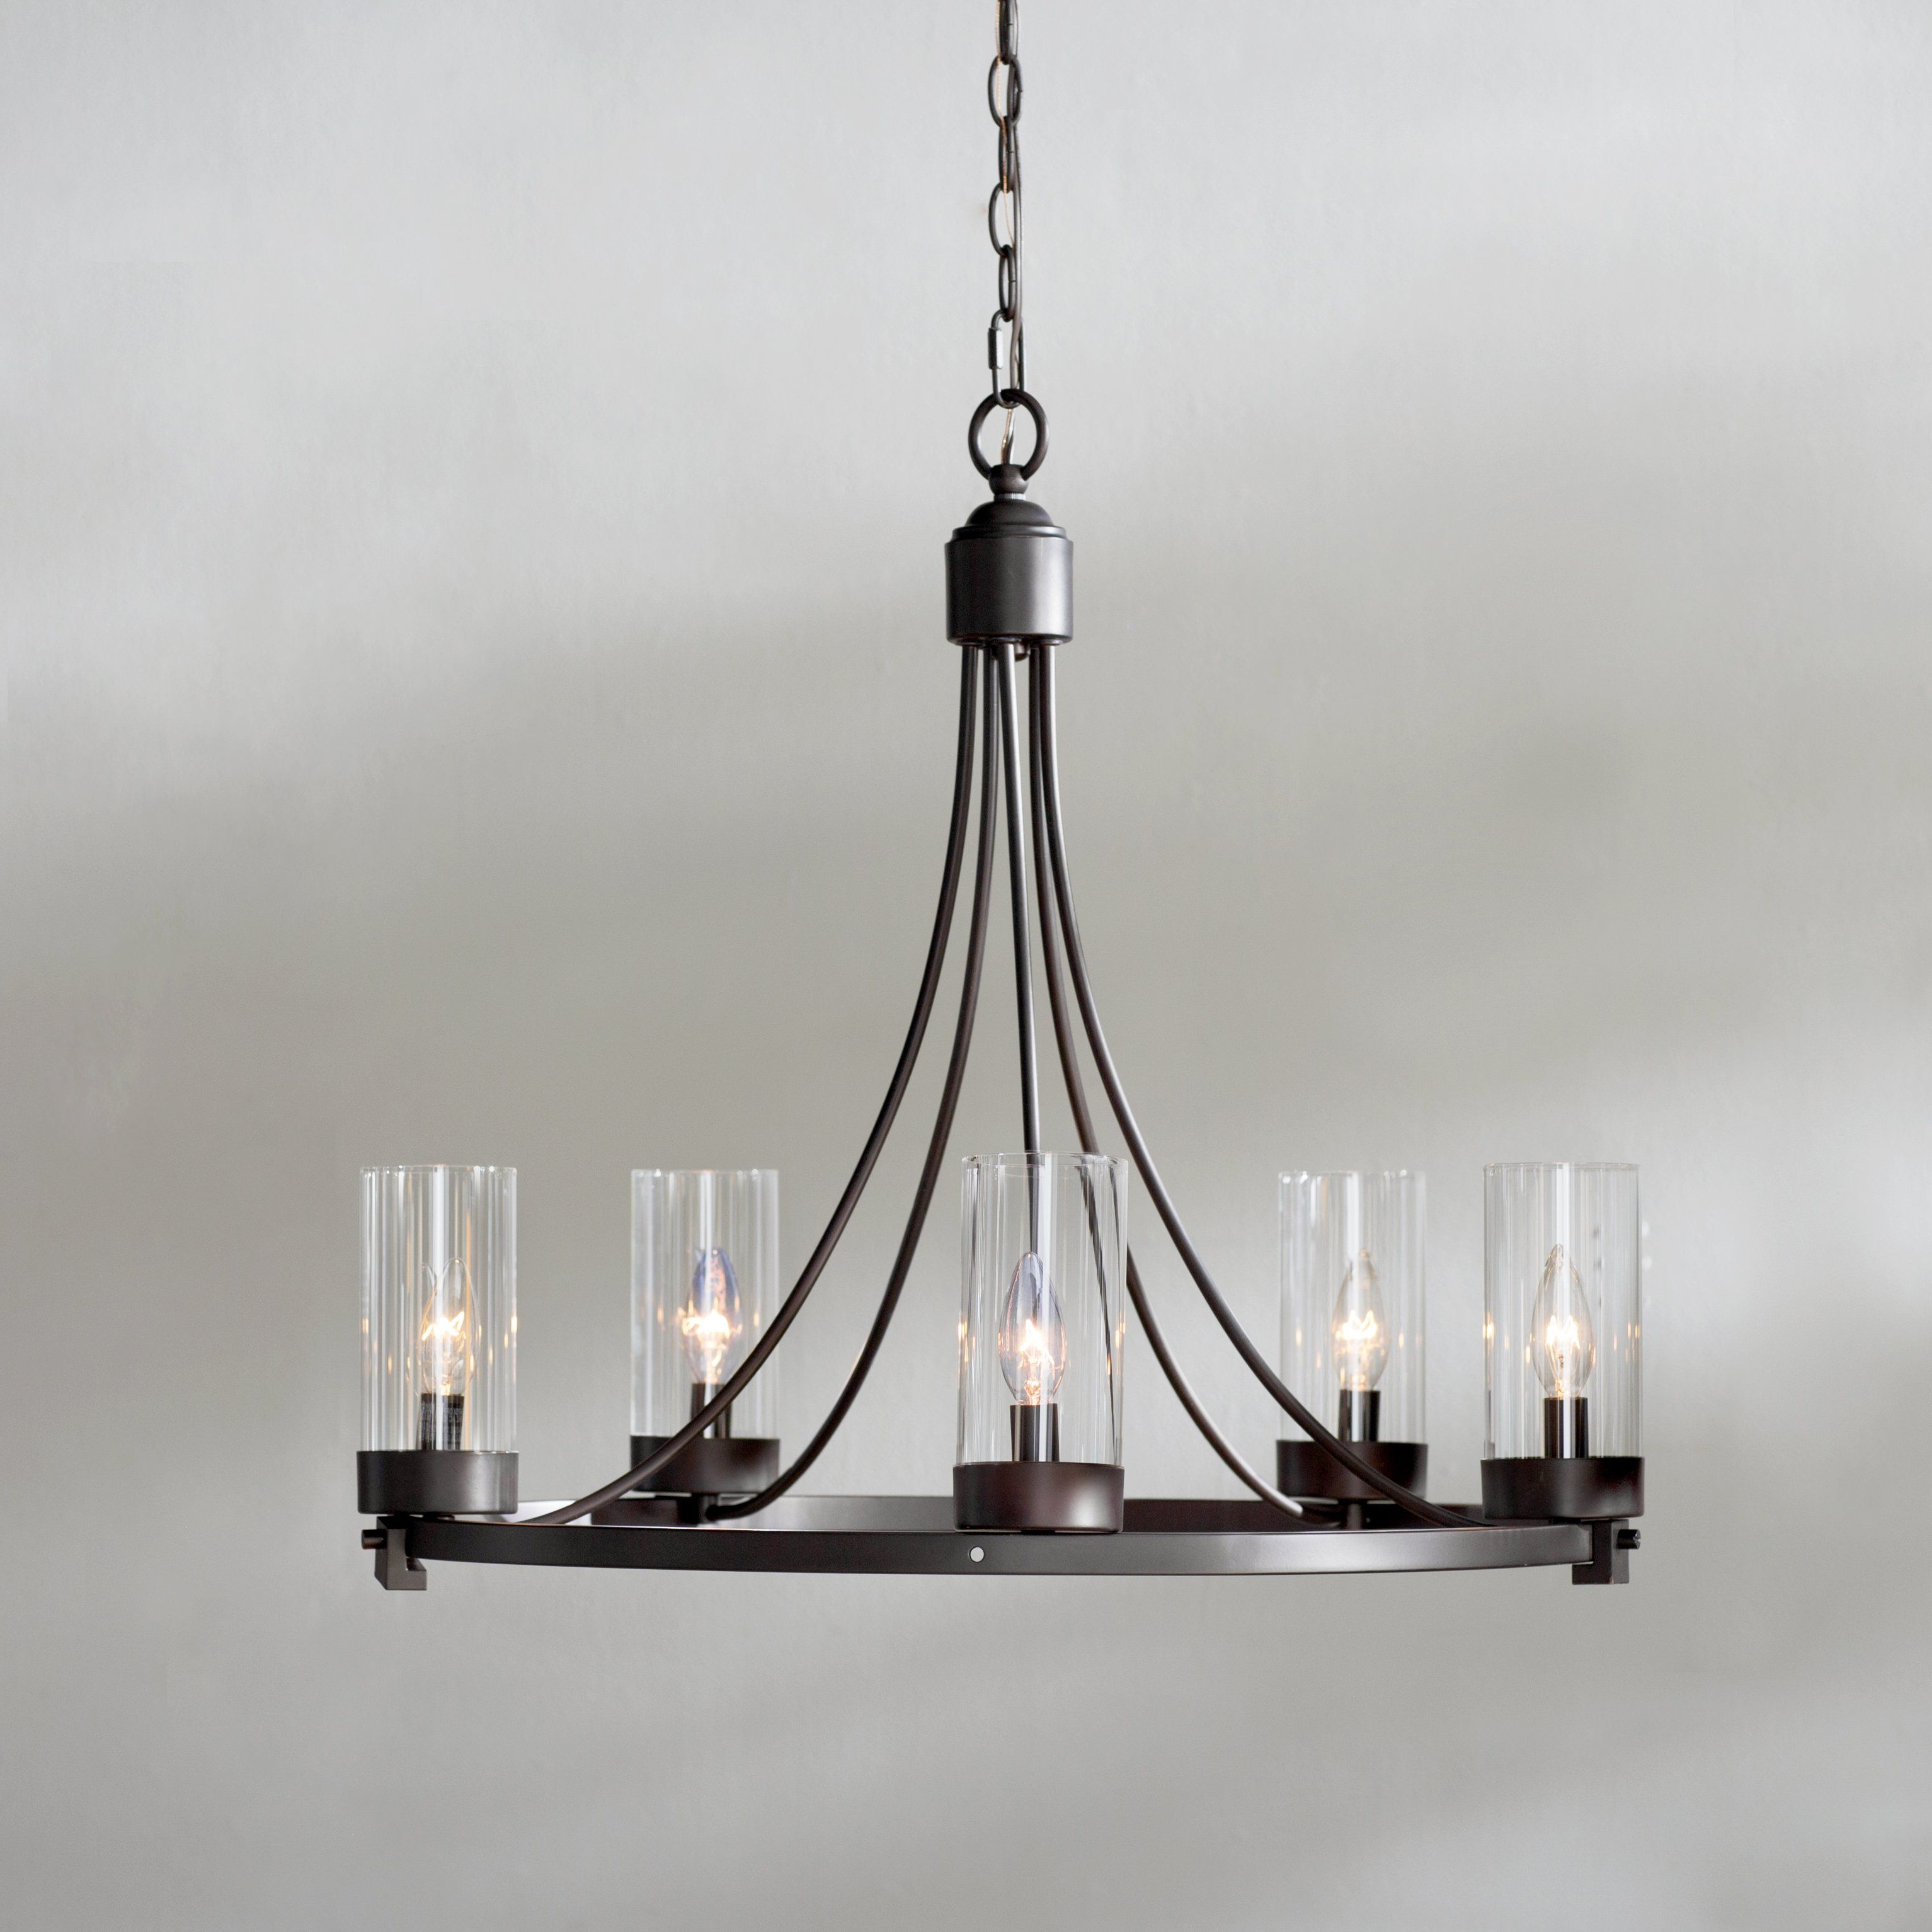 Pinterest For Best And Newest Janette 5 Light Wagon Wheel Chandeliers (View 15 of 25)